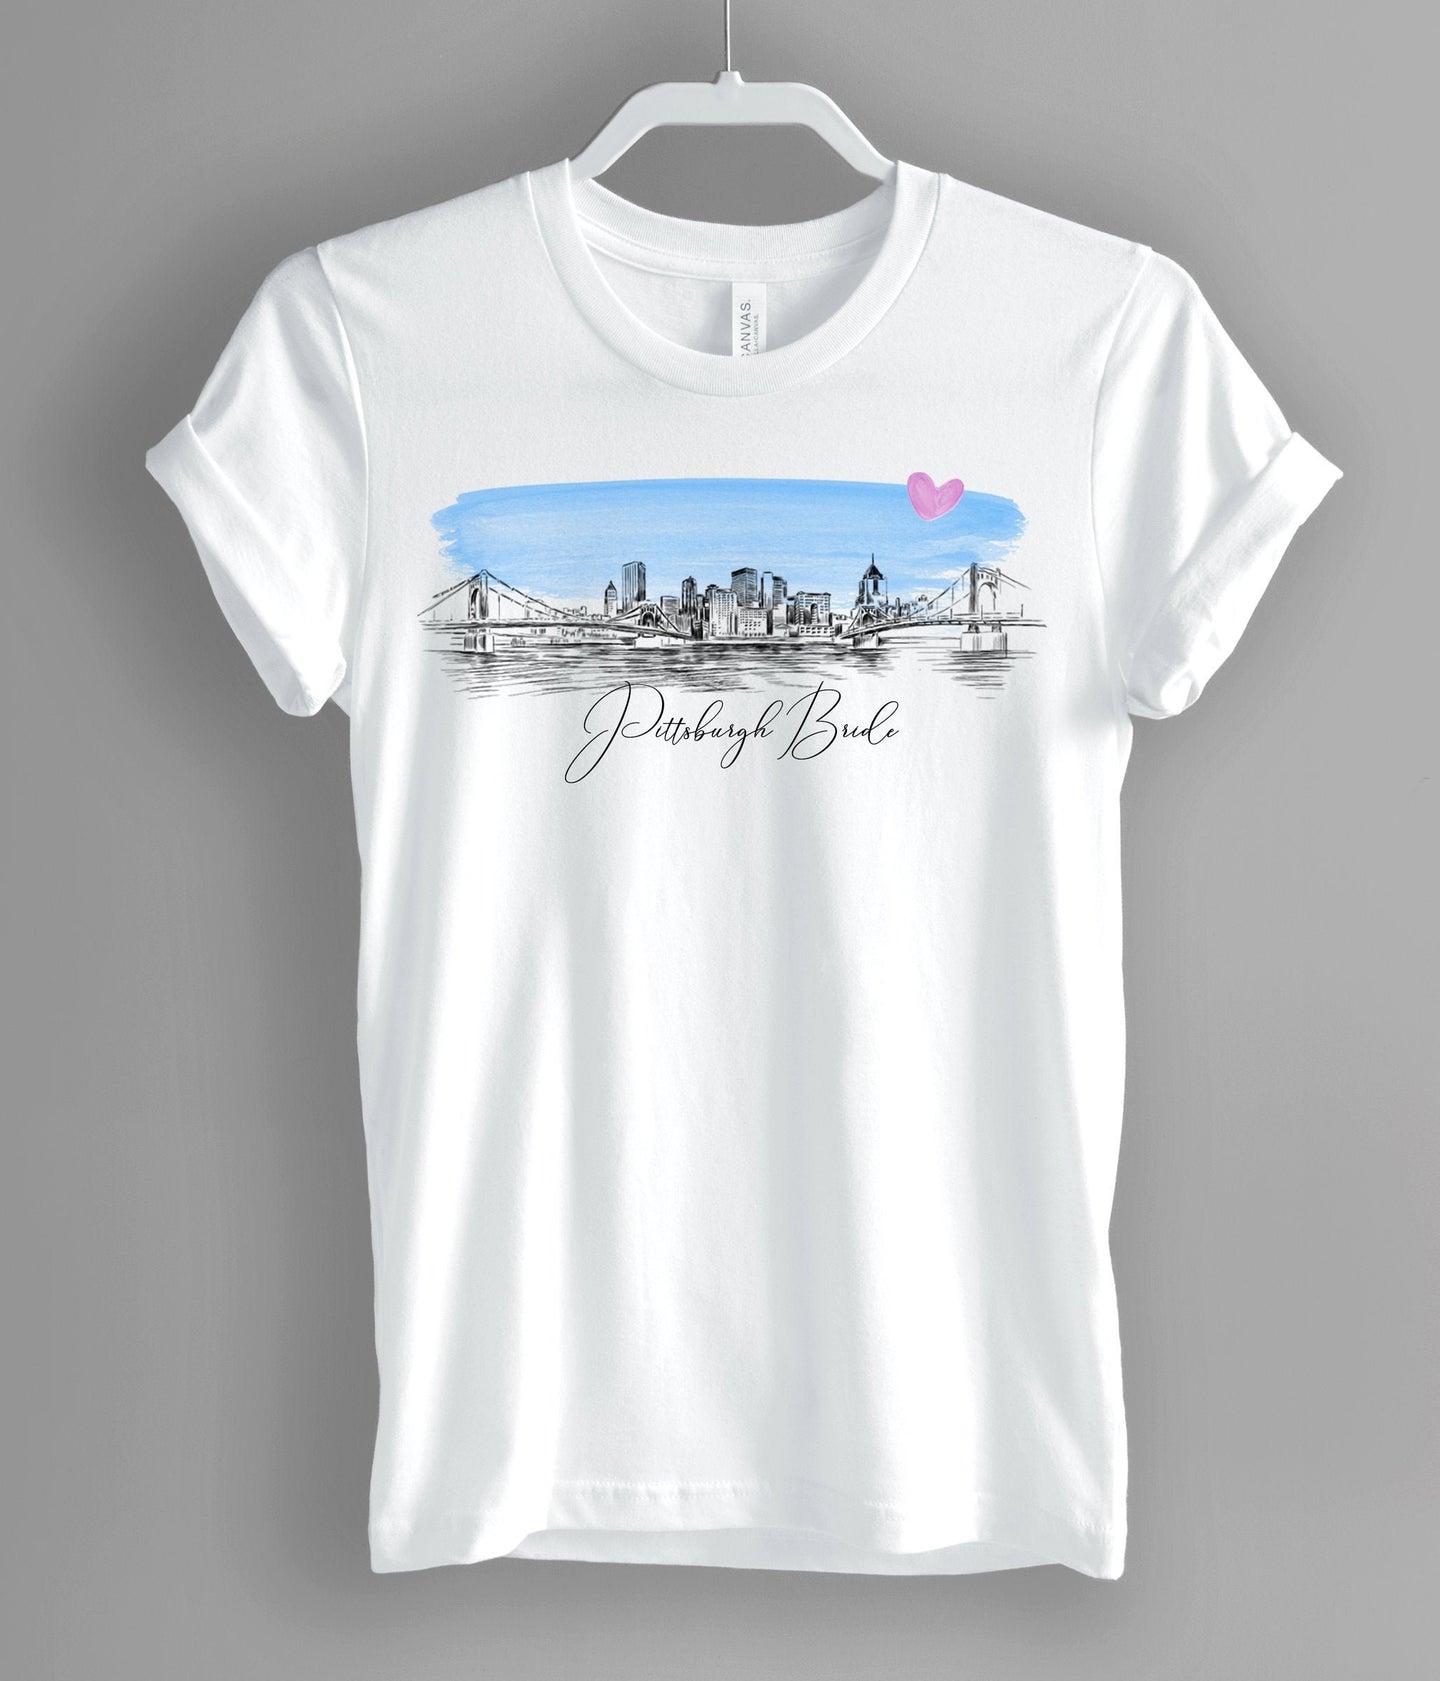 Pittsburgh Bride Shirt, T-Shirt, Pittsburgh, PA, Skyline, Bride Tee, Wedding Shirt, Bride, Bridal Shower Gift, Bachelorette, Gift